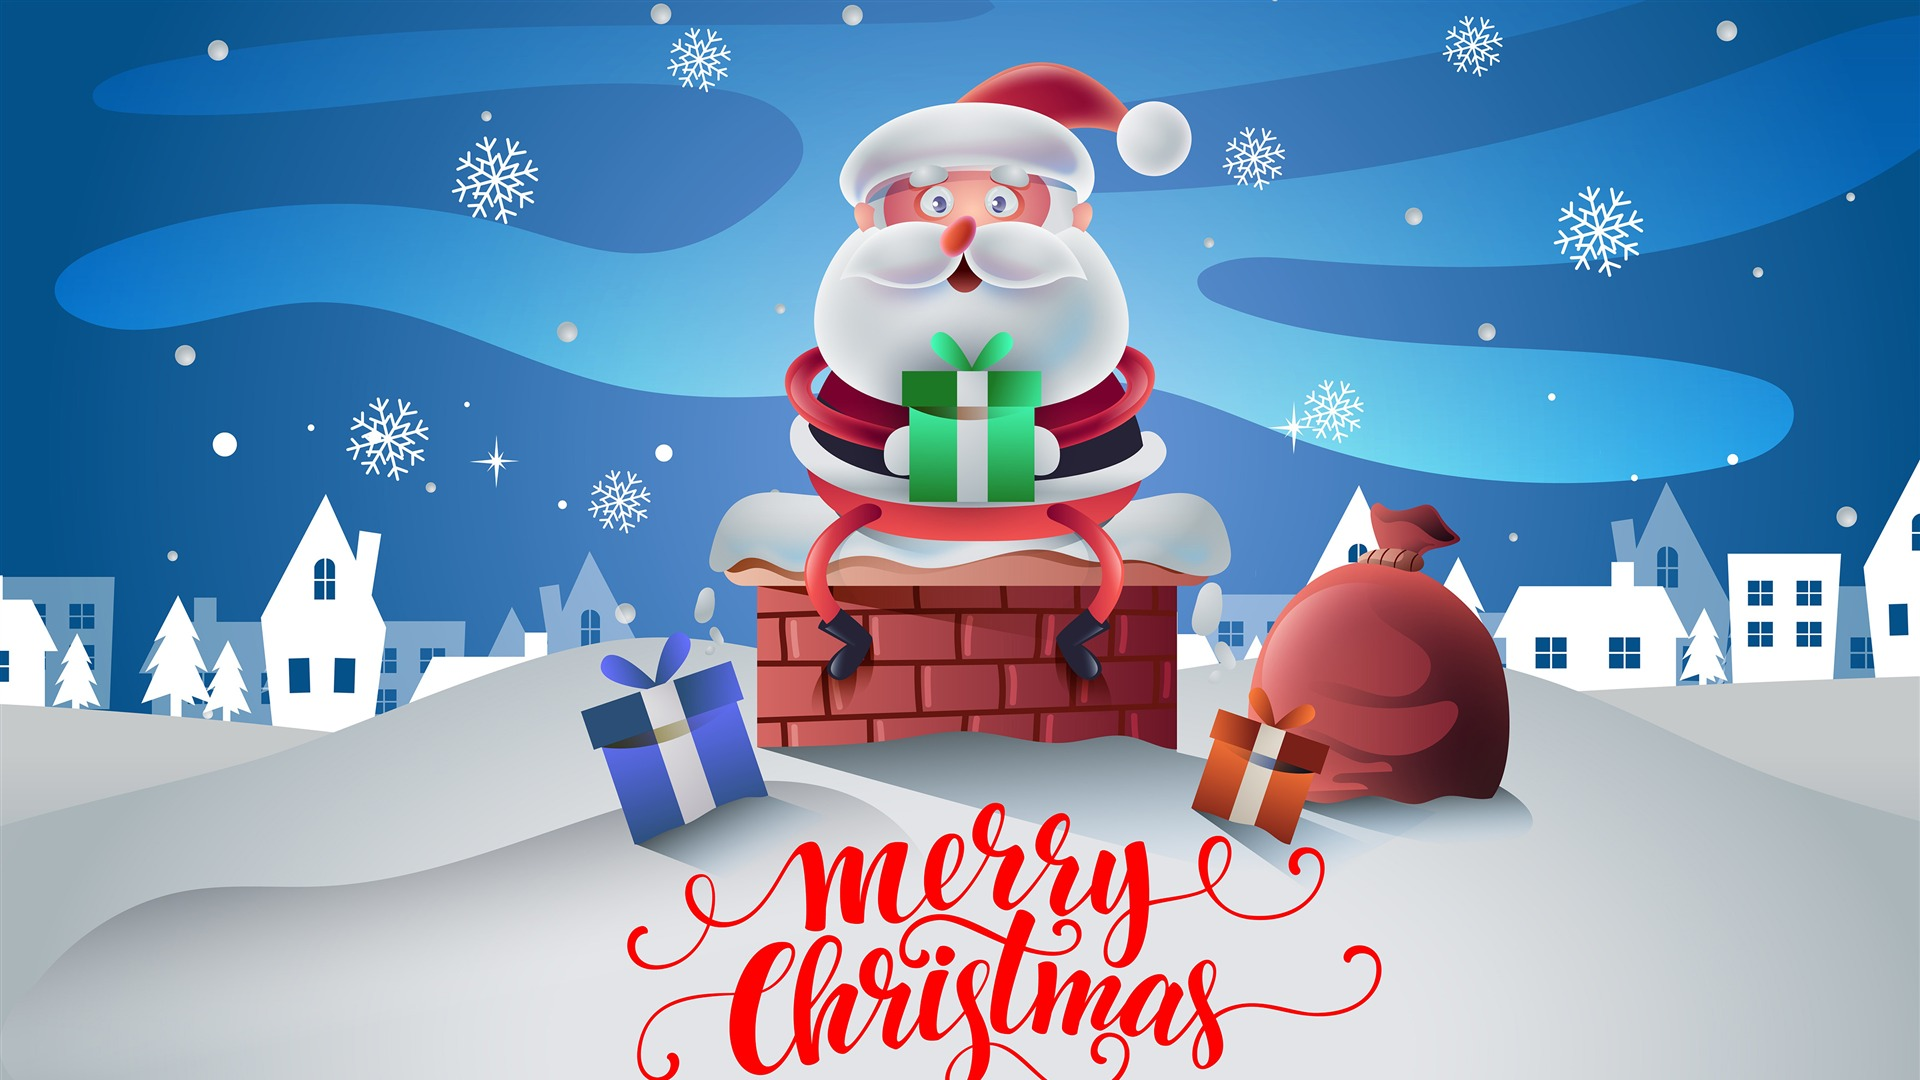 Christmas Hd Wallpapers 1080p.20 Merry Christmas Hd Wallpapers 1080p 2018 Collection